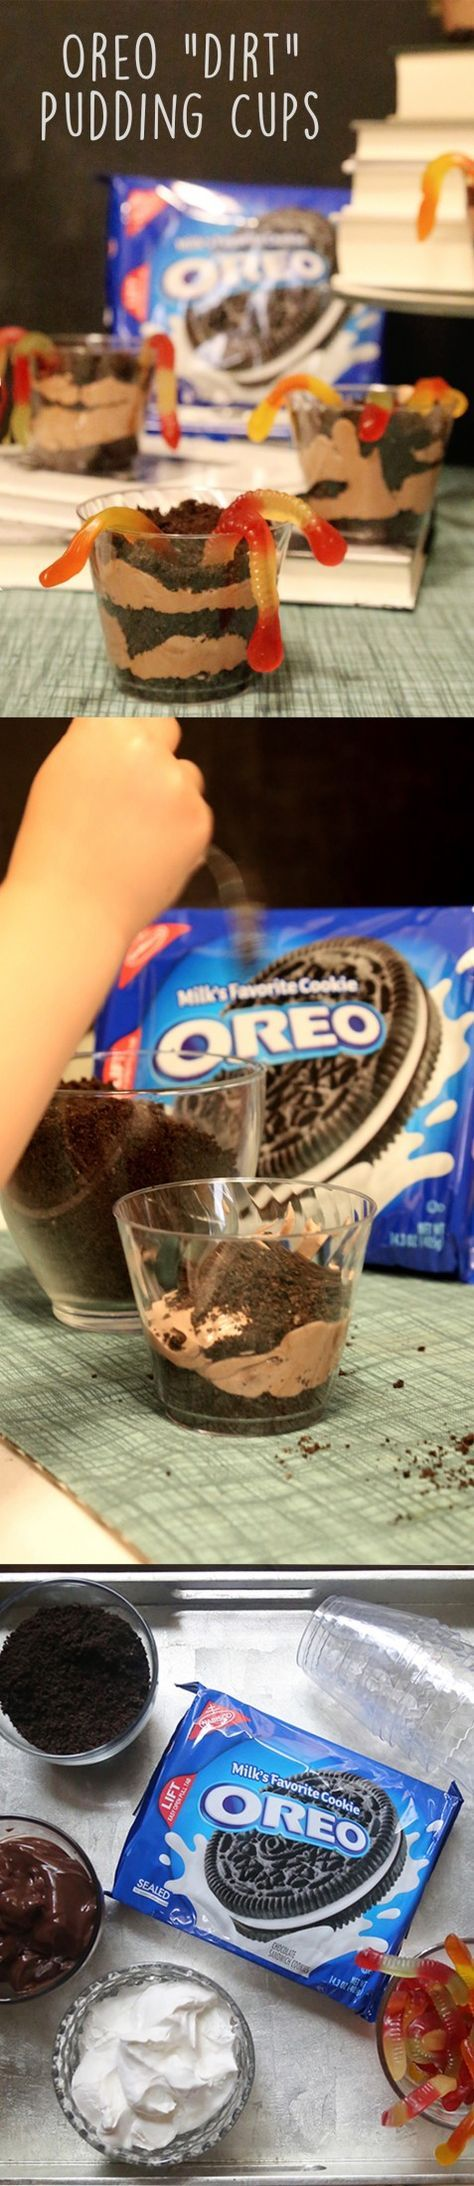 "Let your kids play in the ""dirt"" with these OREO cookie pudding cups! [Ad]"